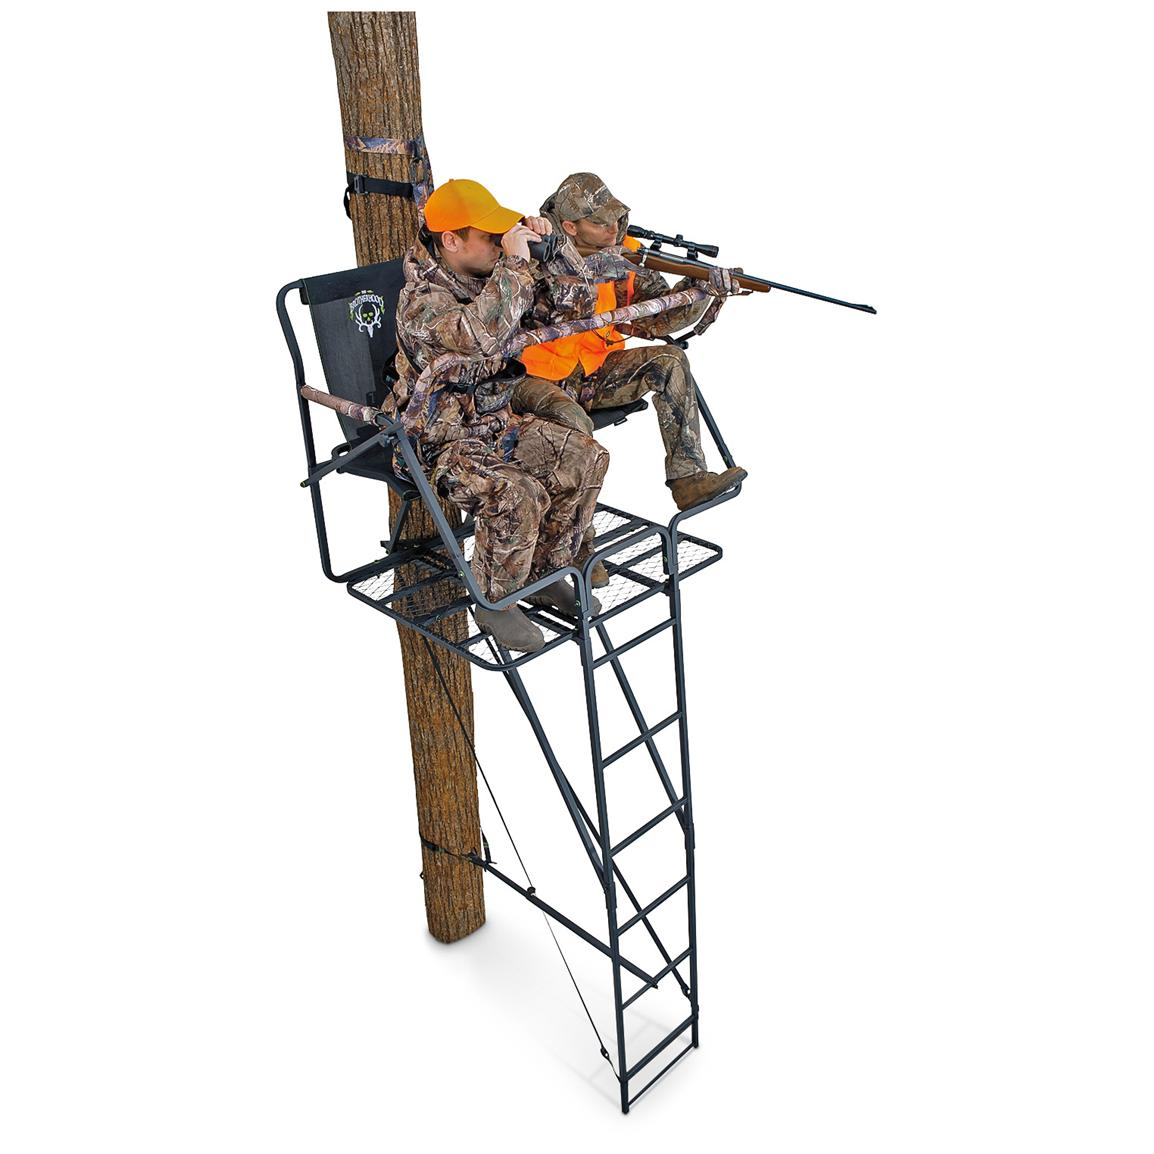 Ameristep® Brotherhood® 17 foot Deluxe 2-person Ladder Tree Stand, Realtree® AP™